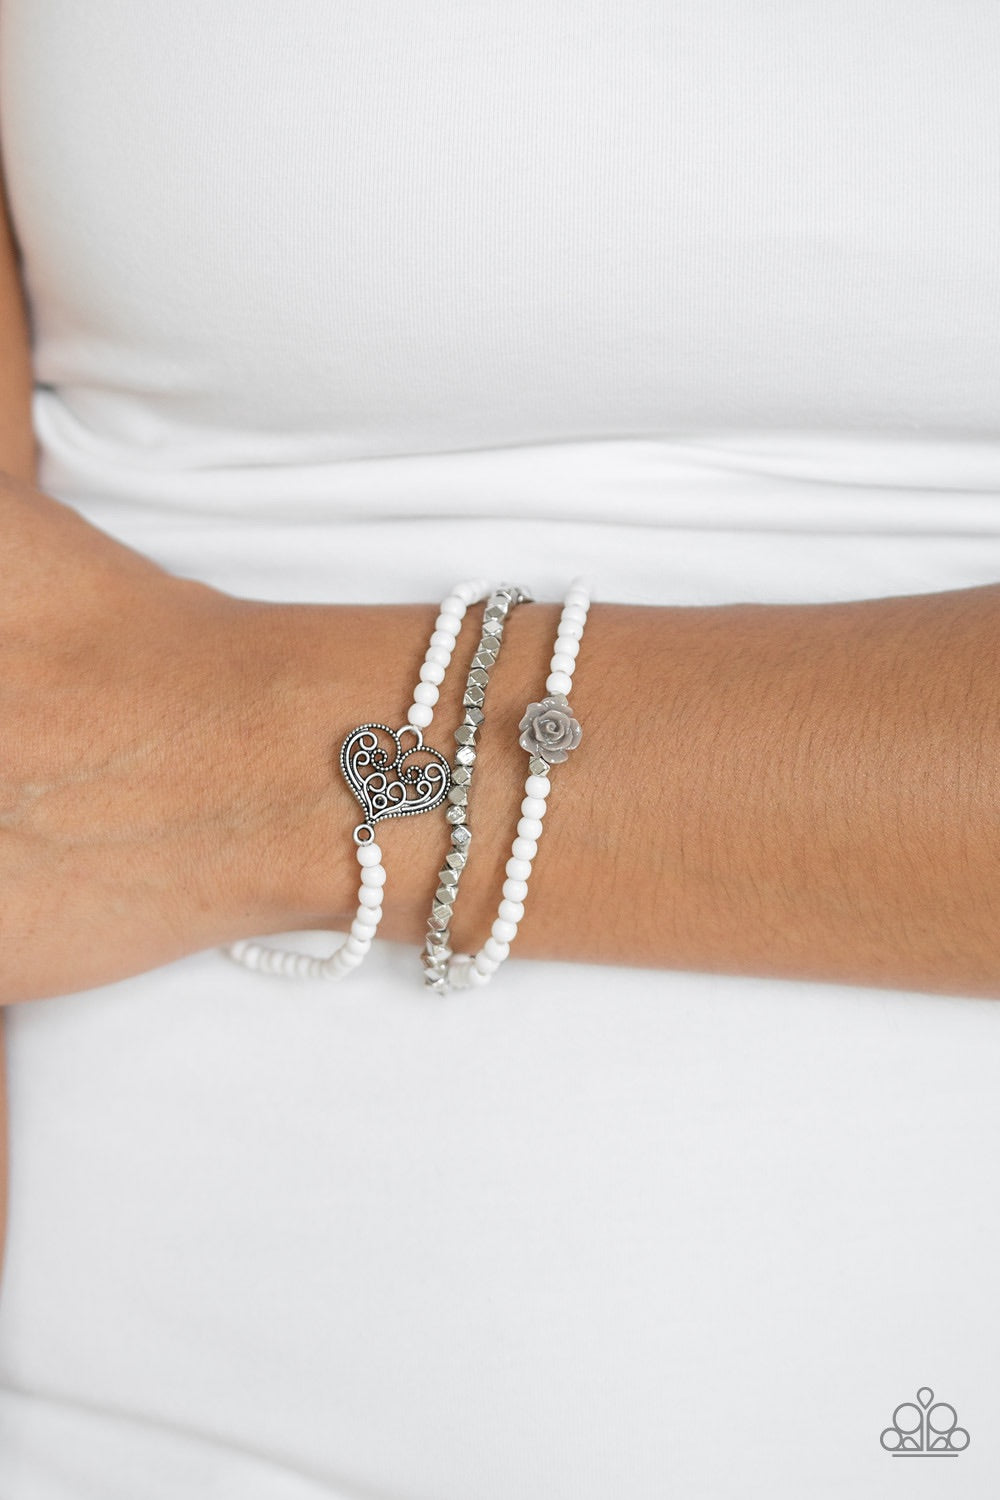 Lovers Loot - White Paparazzi Jewelry Bracelet paparazzi accessories jewelry bracelet